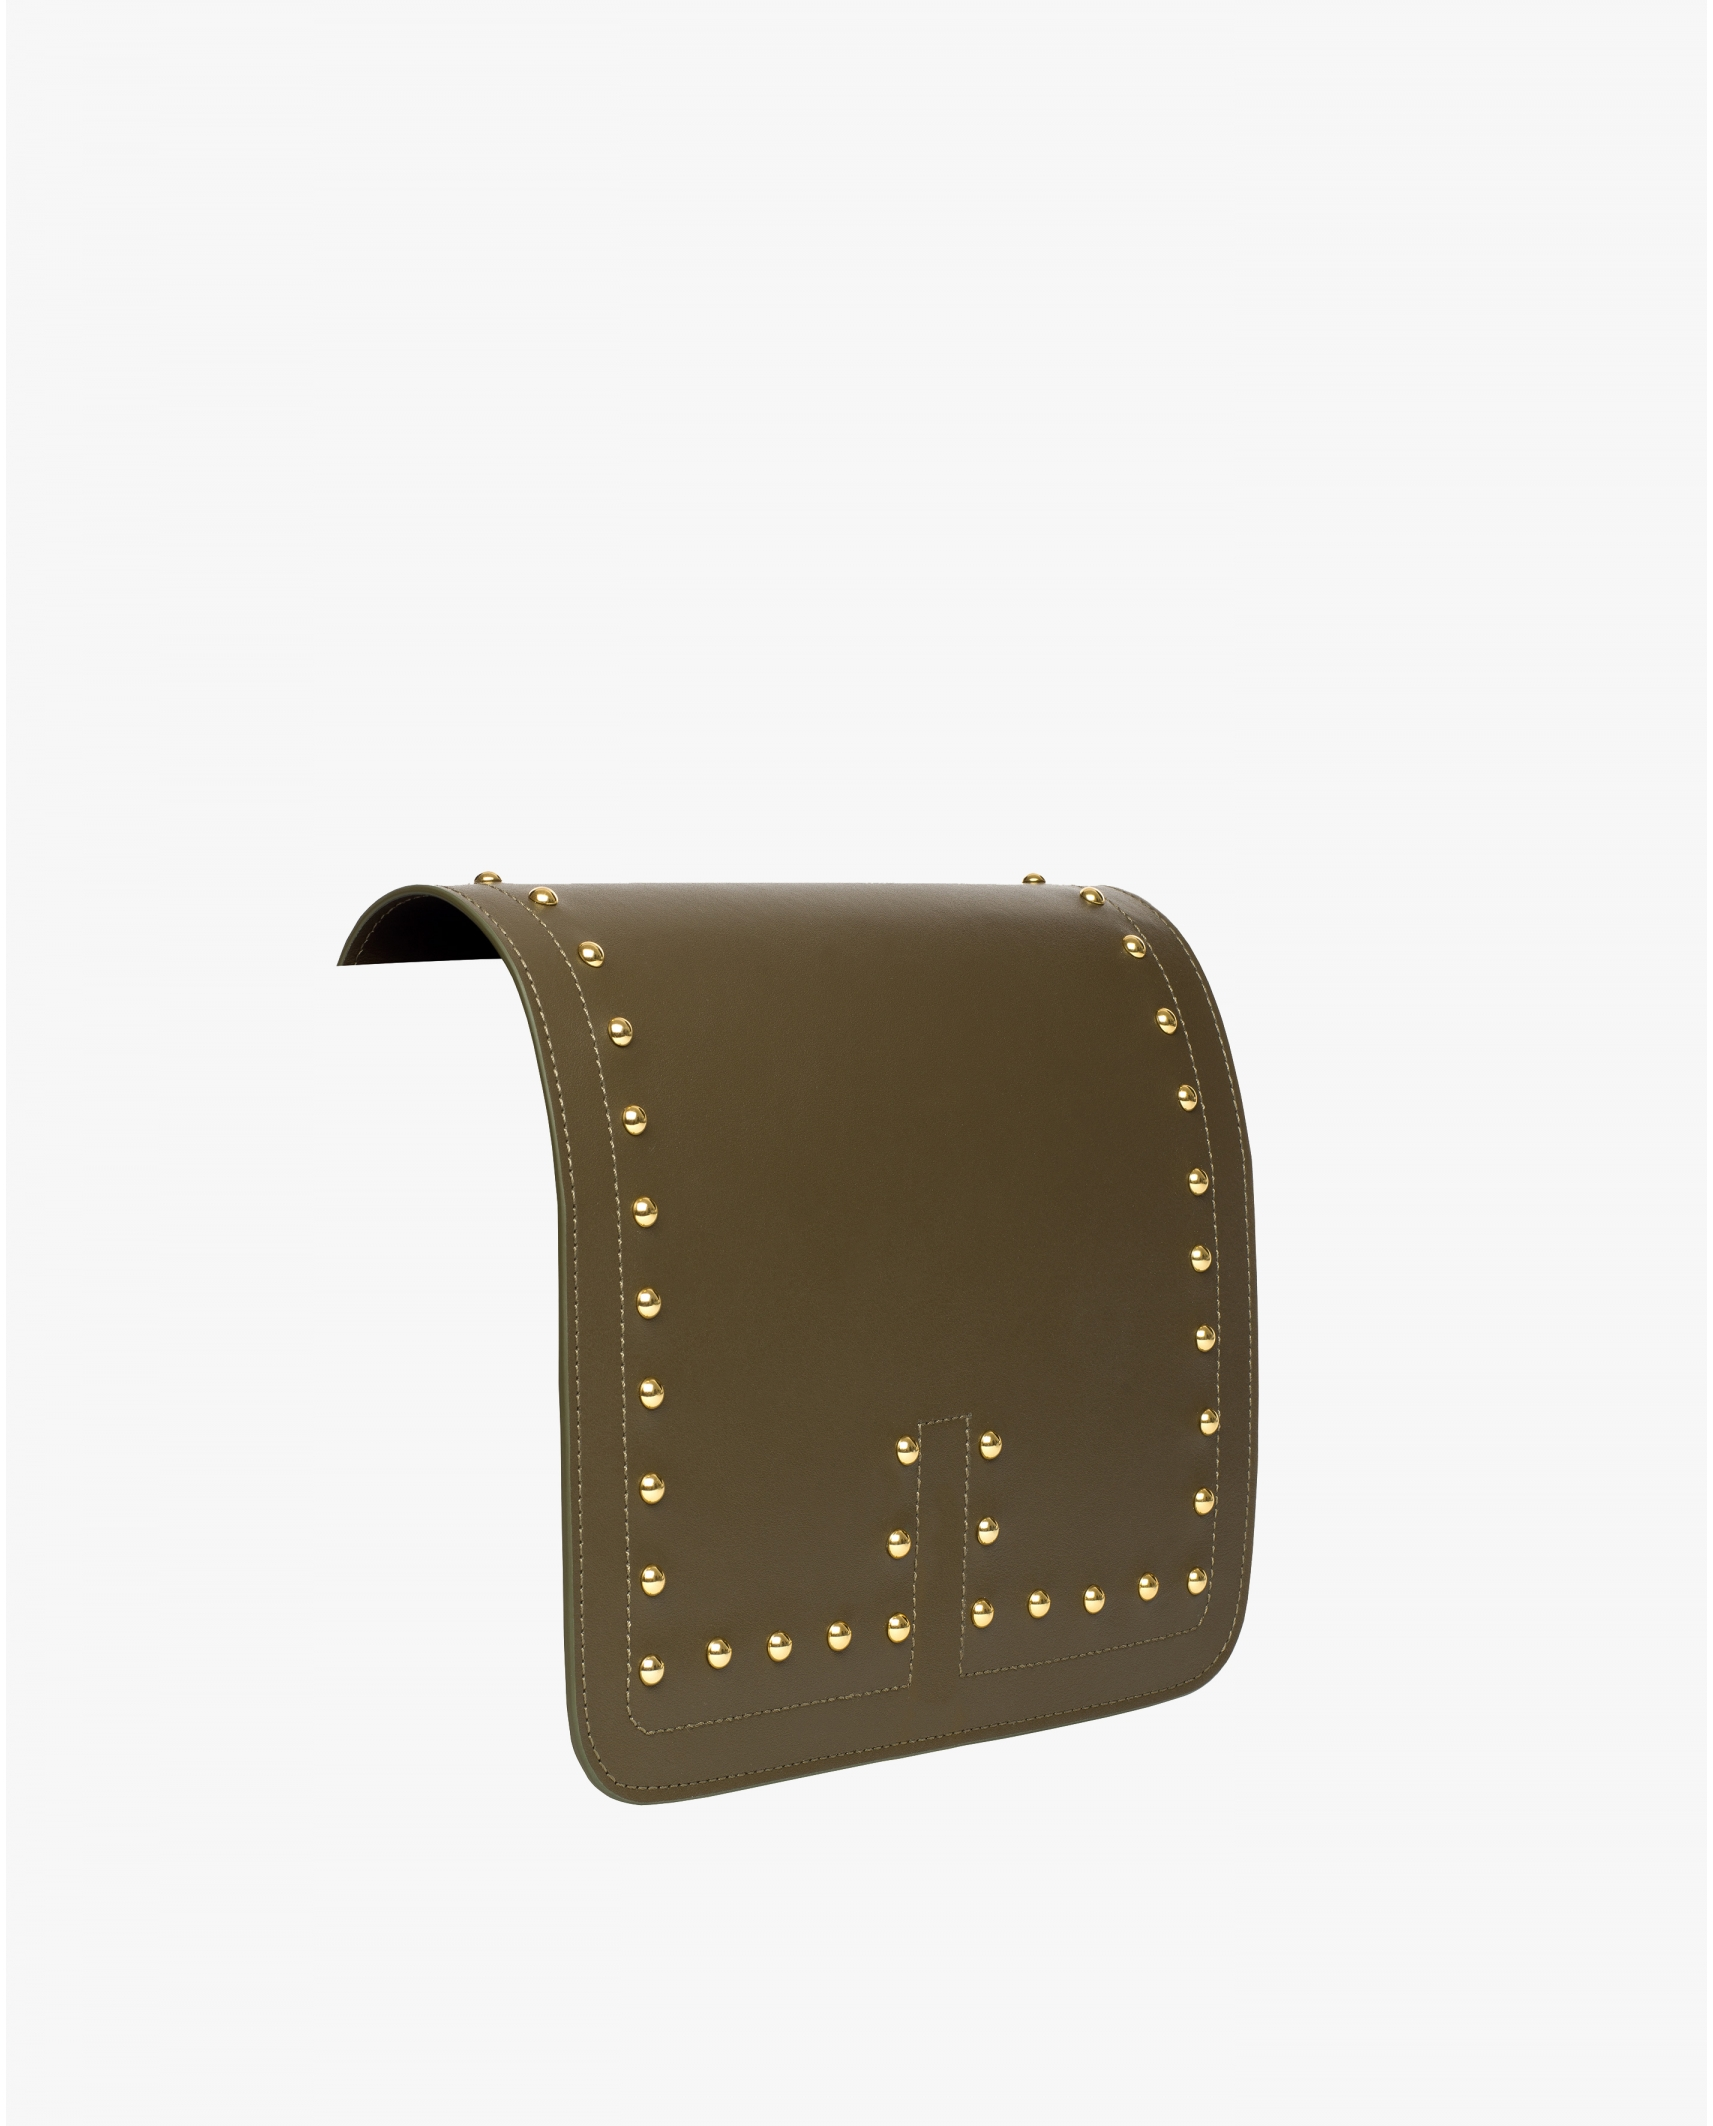 TINO LEATHER STUDS FLAP TRUFFLE